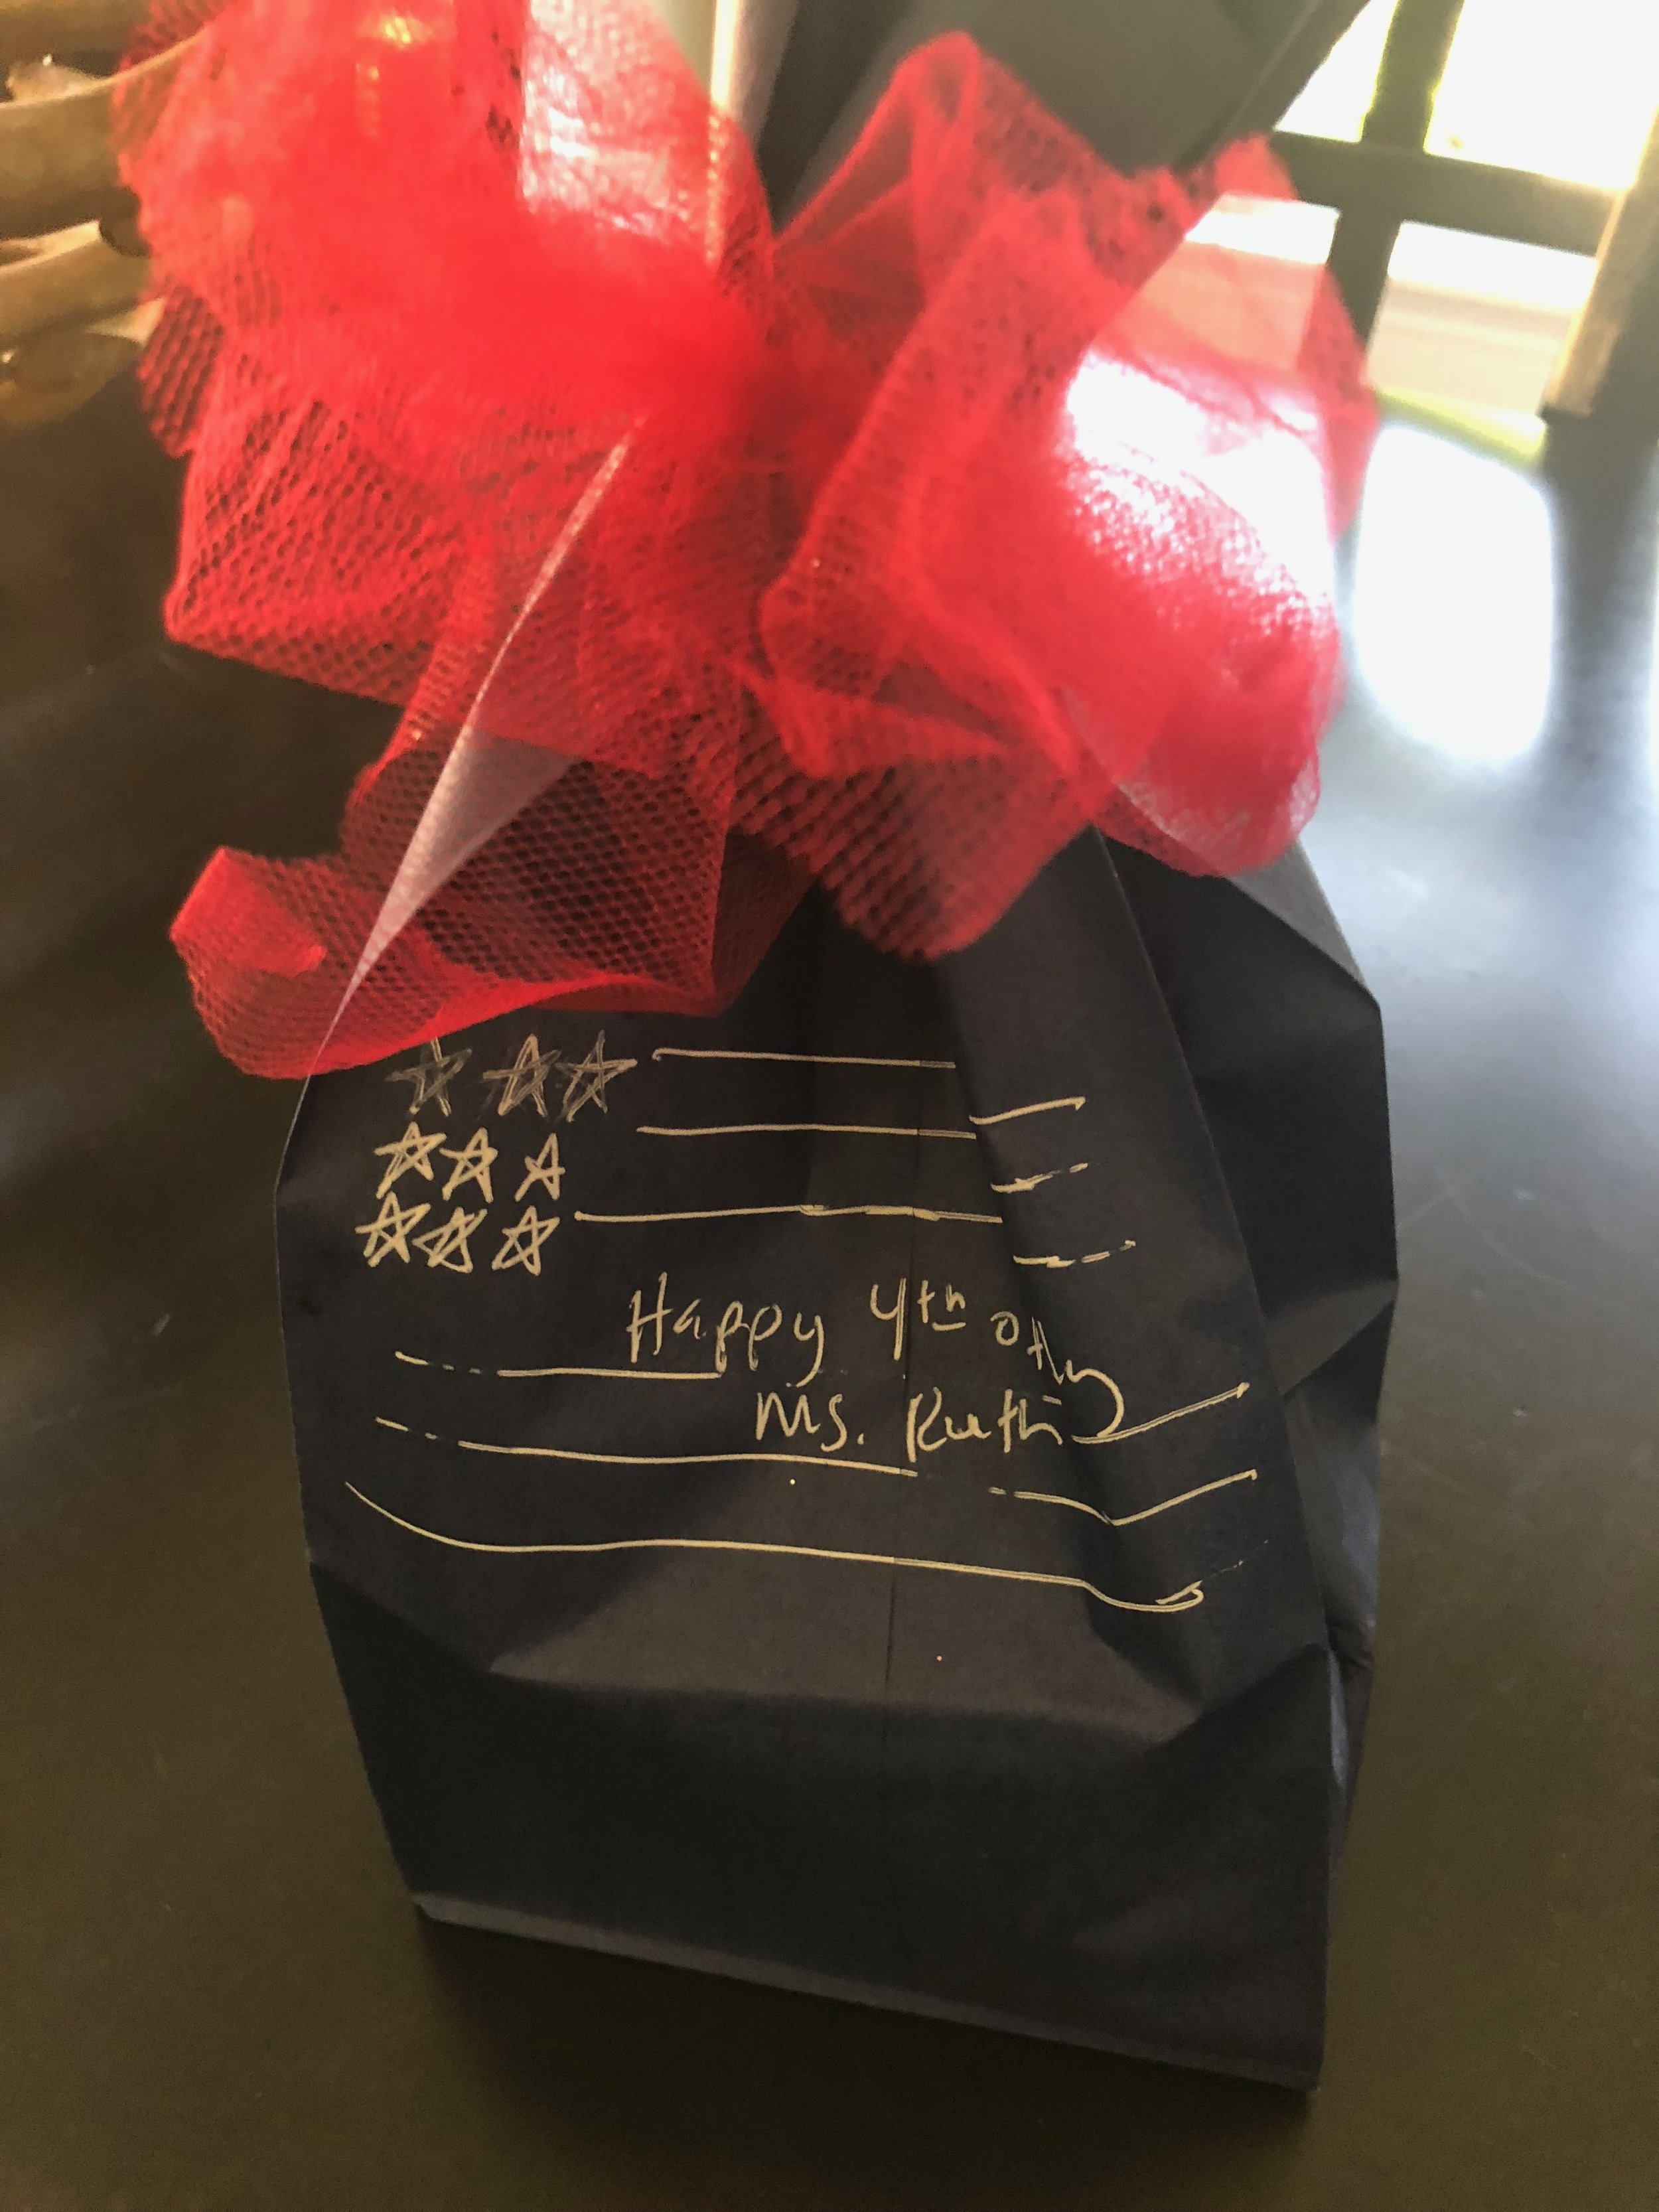 To give the crystal to our piano teacher, I wrapped it in white tissue, used a blue paper lunch bag and wrote a note with a white pen. I tied the bag with a strip of red tulle.